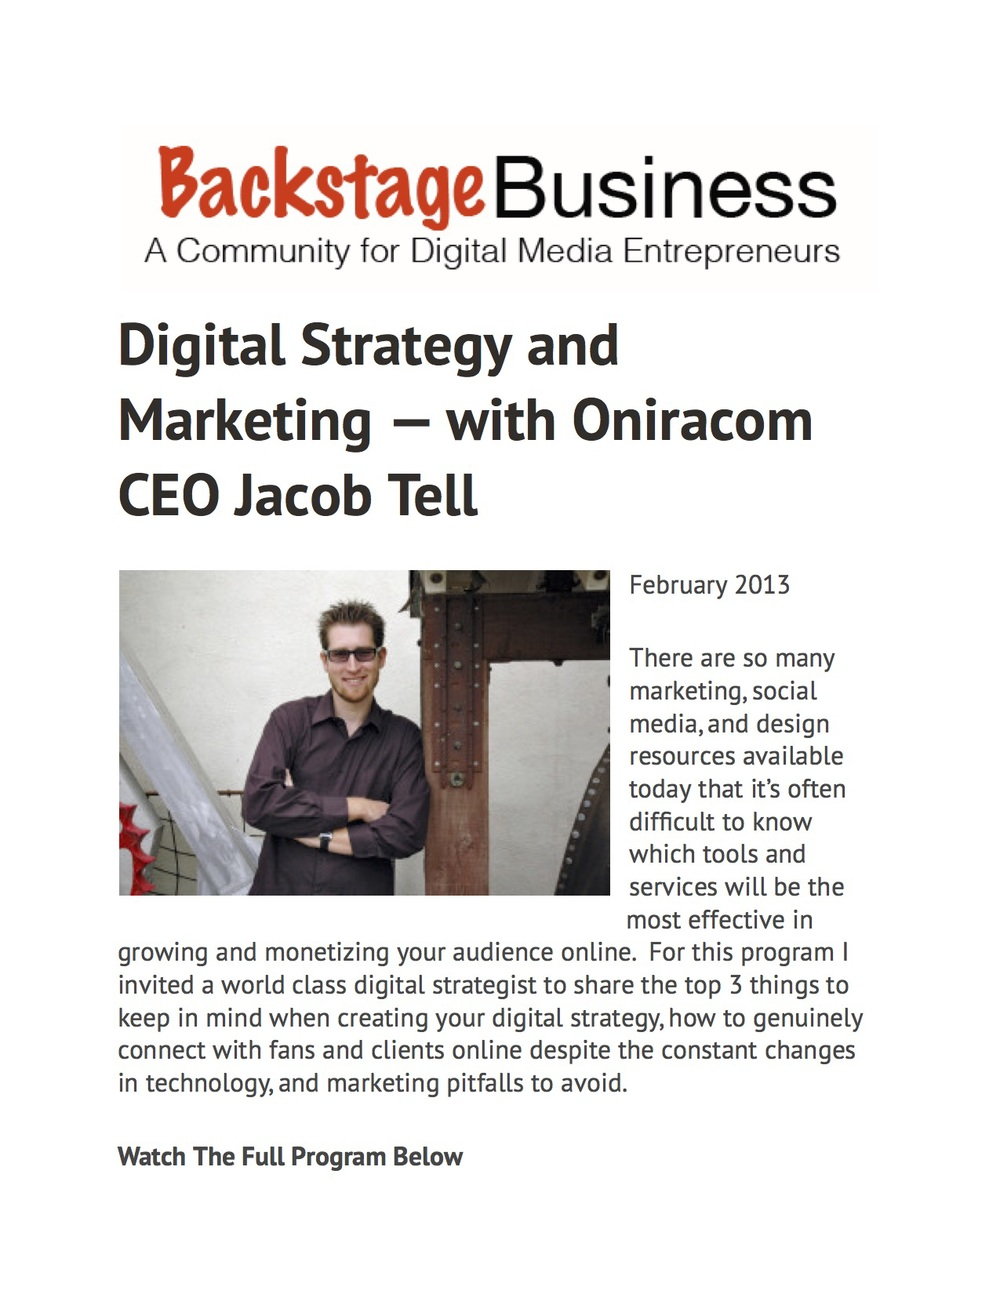 2013-02-01_JacobTell_BackstageBiz.jpg